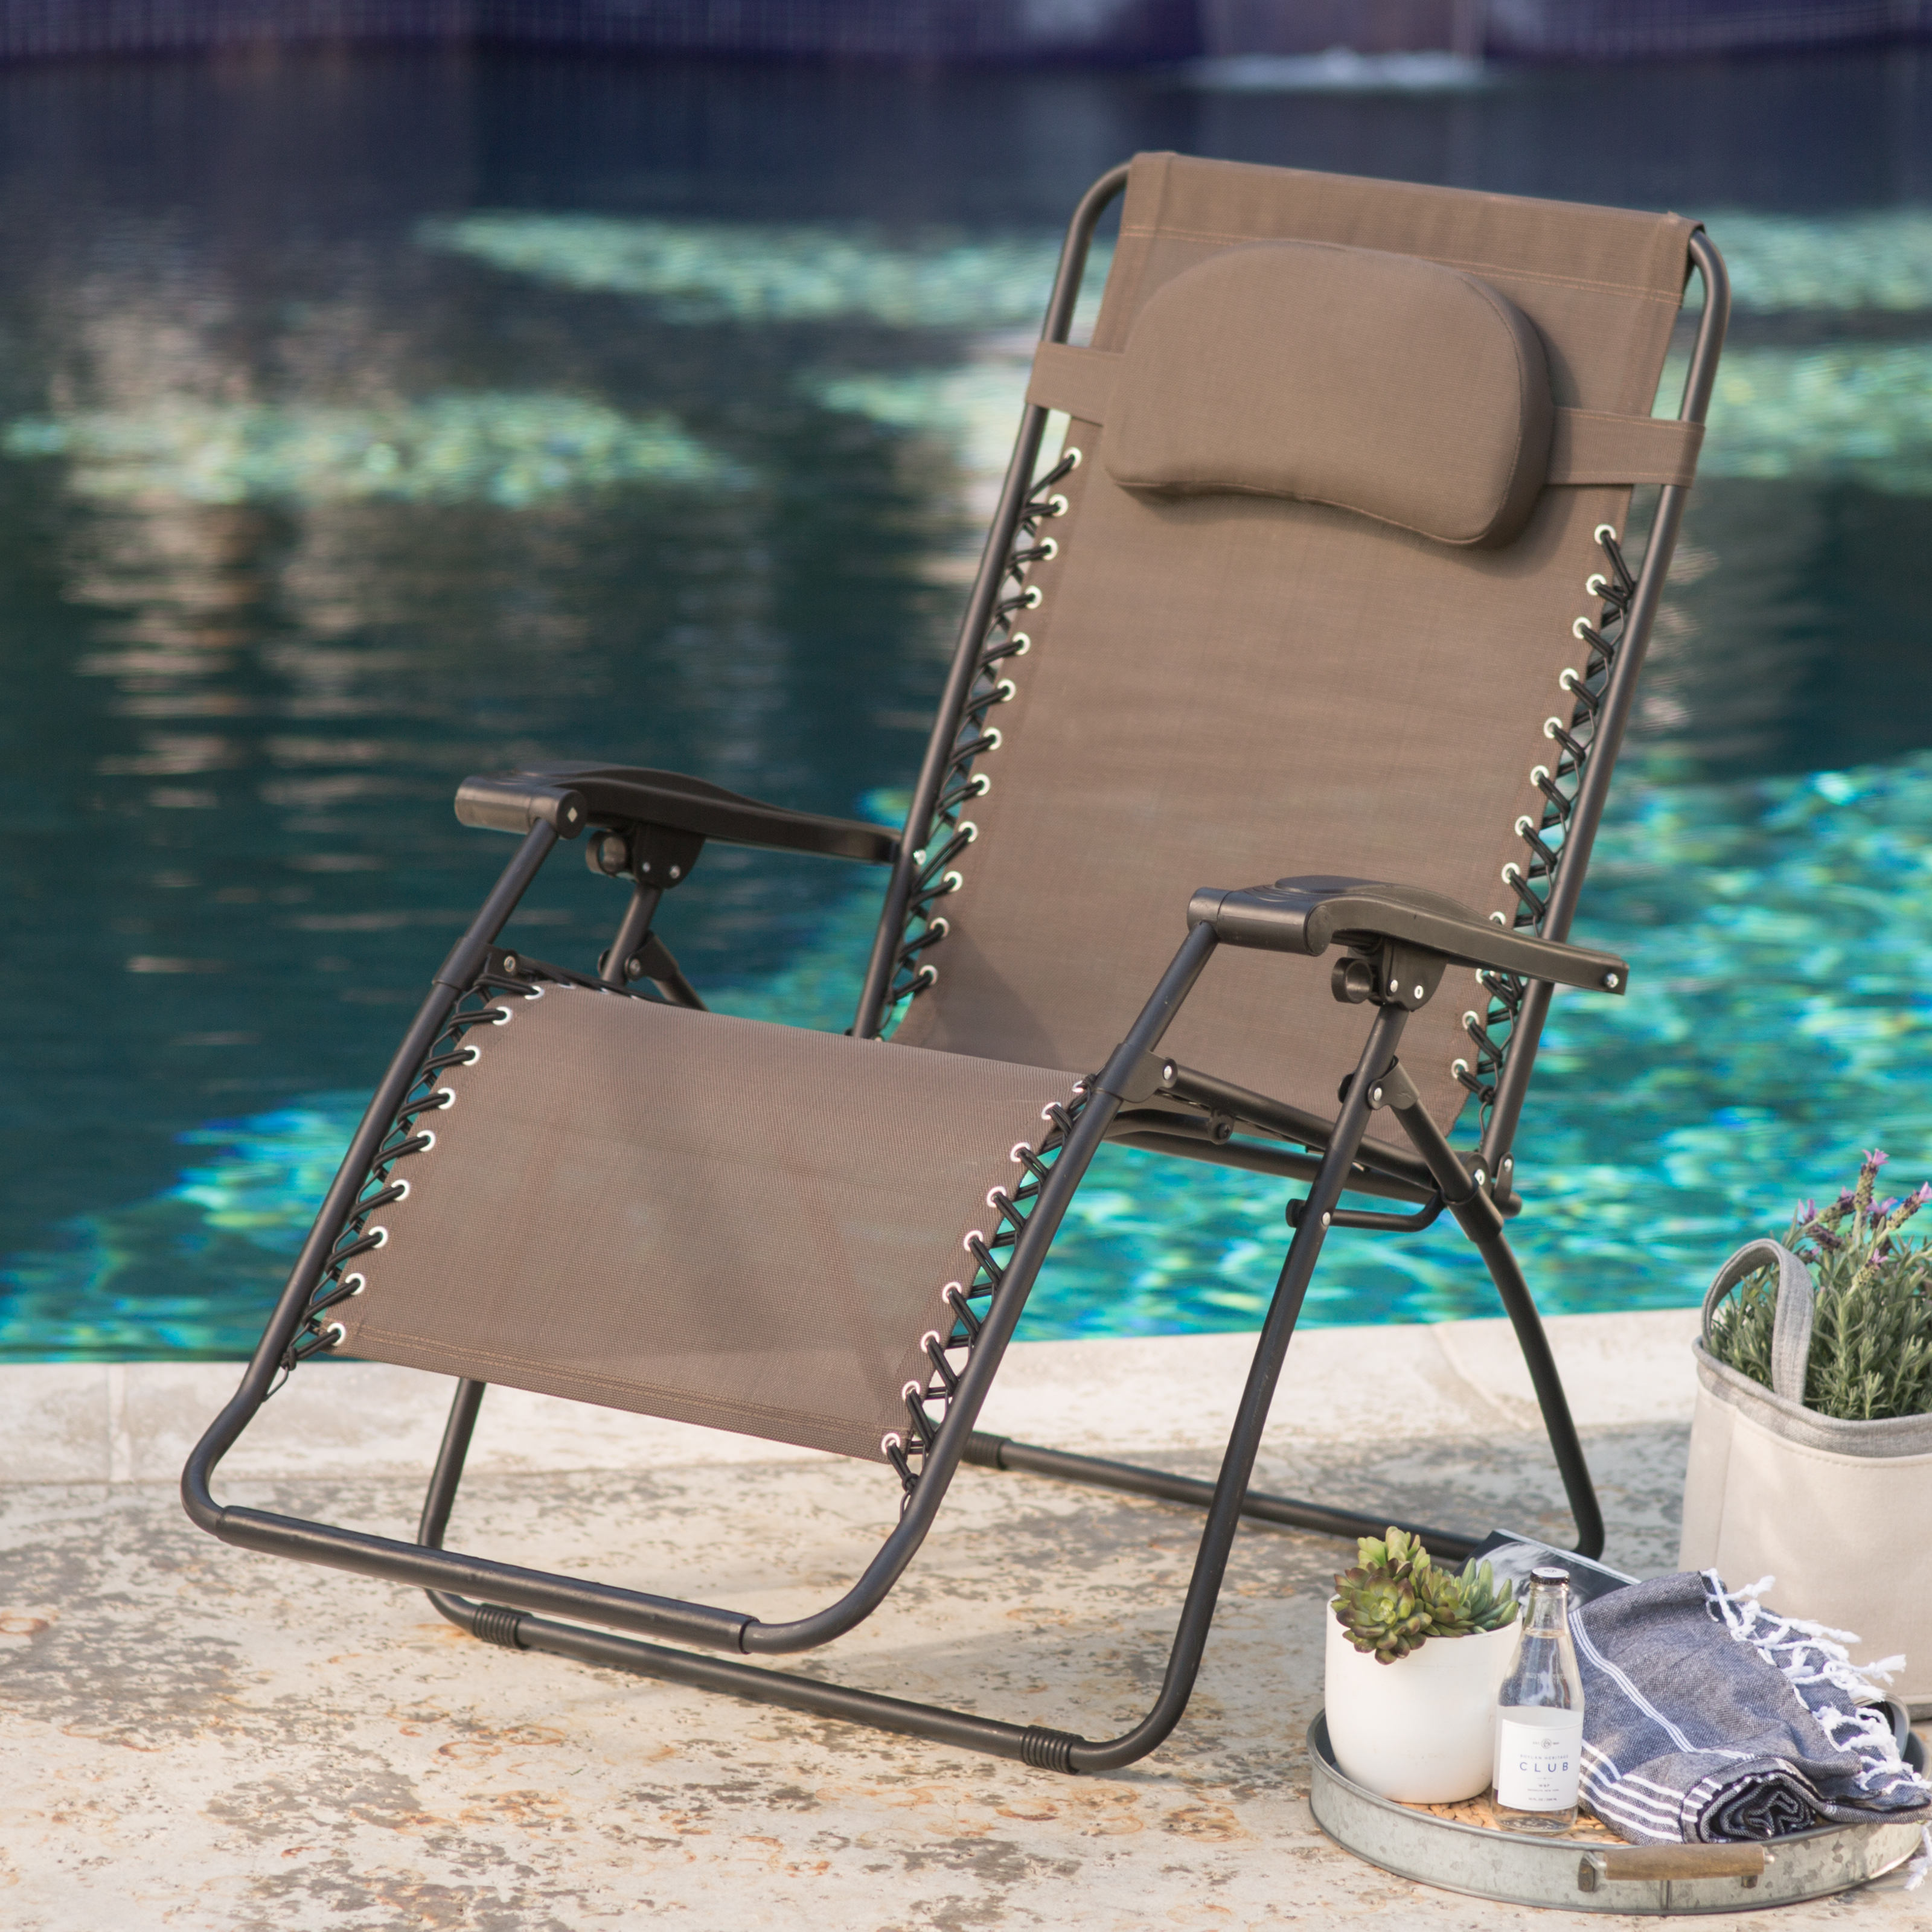 pin sonoma outdoors pinterest chair antigravity patio oversized